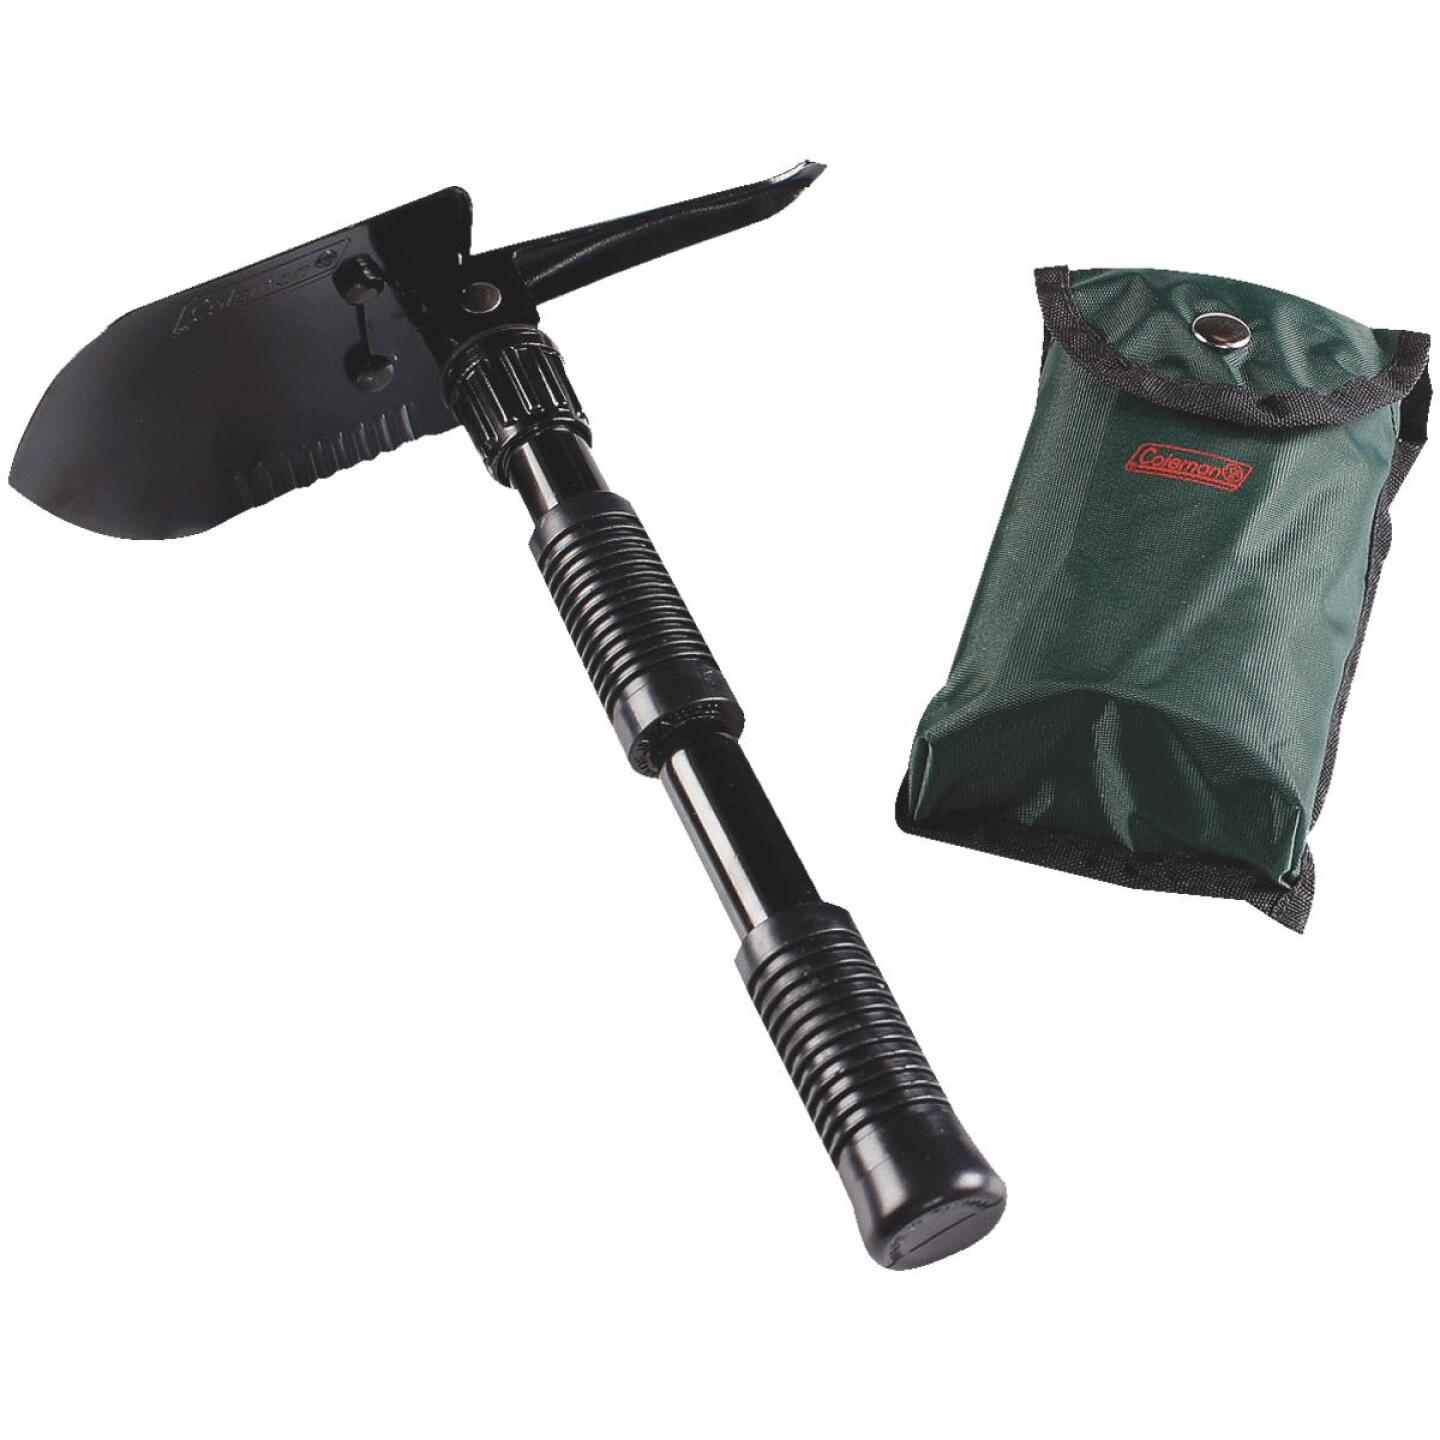 Coleman 16.25 In. Steel Folding Shovel with Pick Image 1